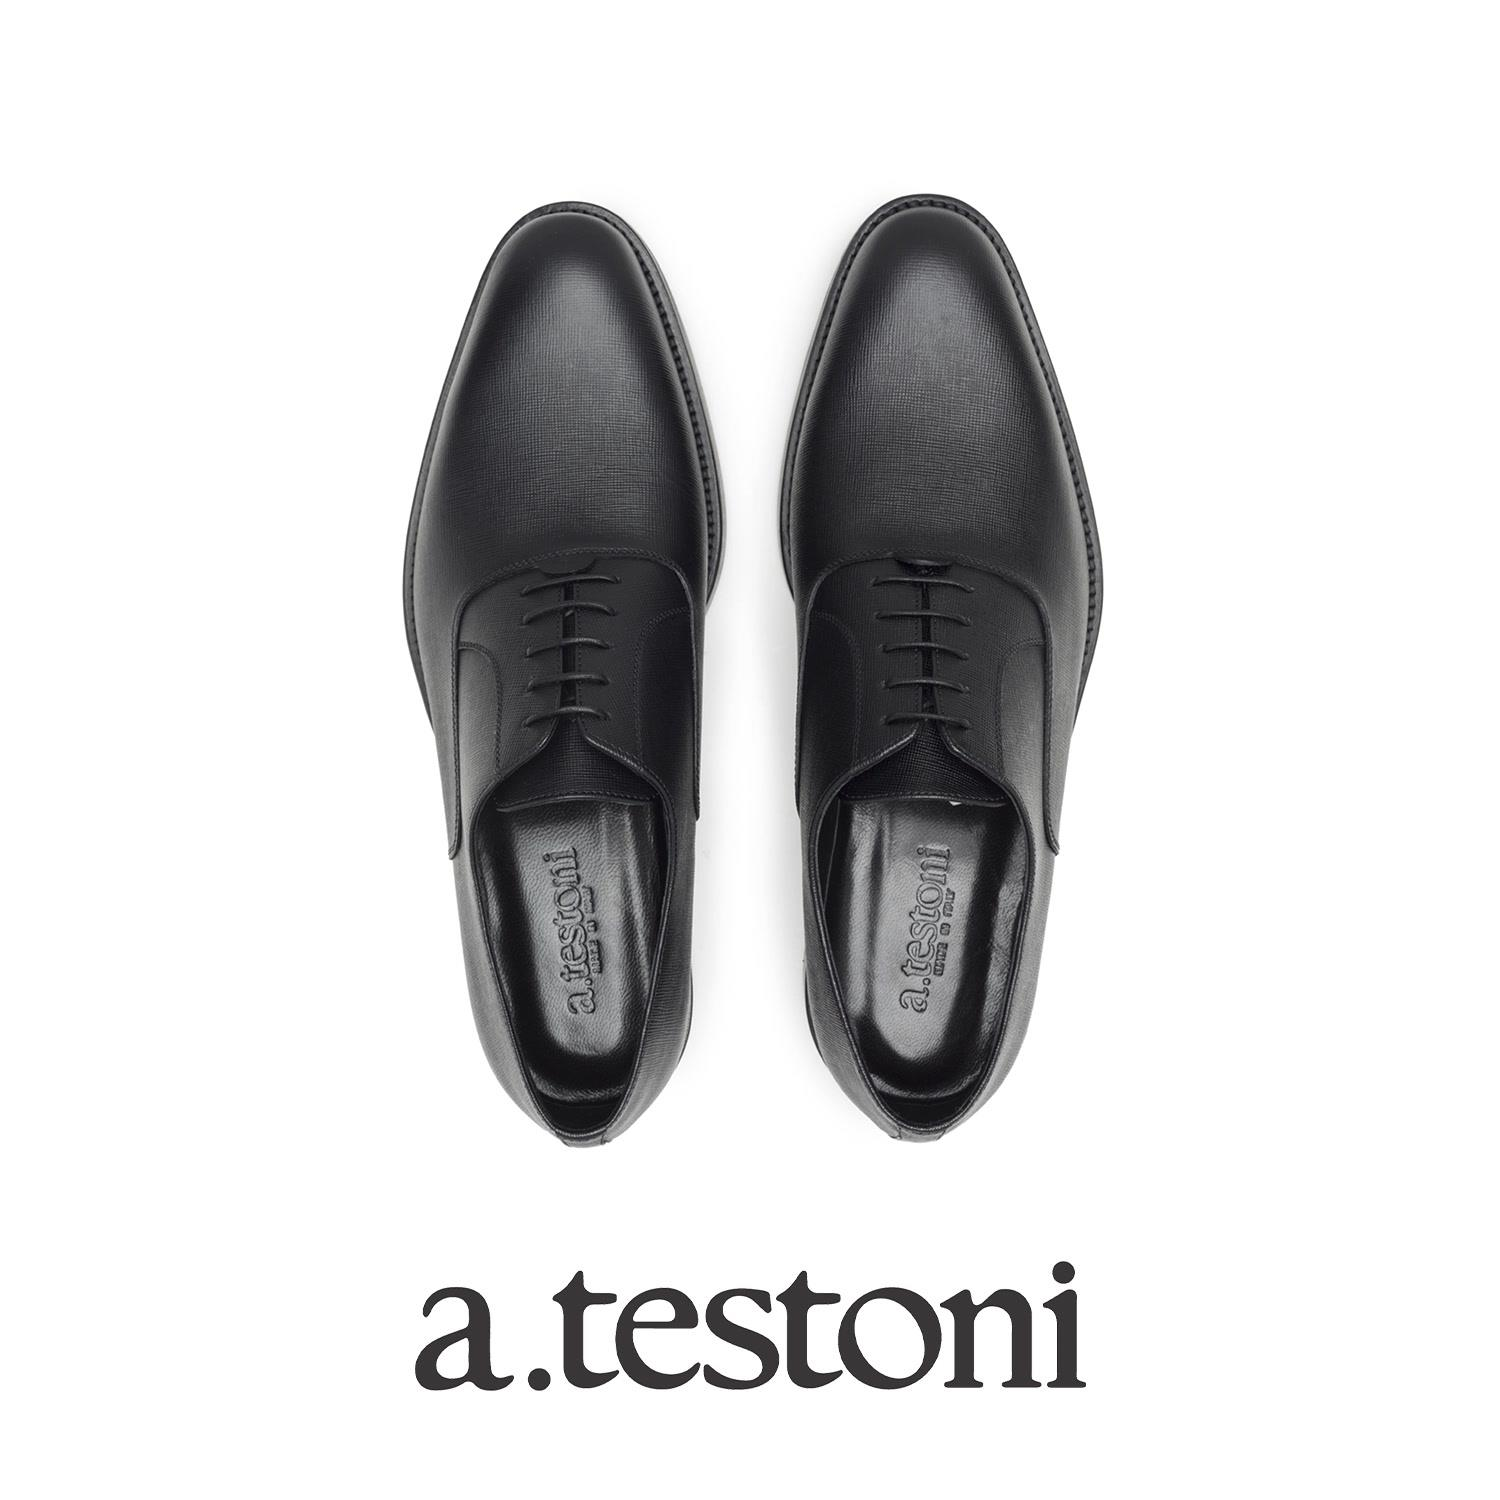 What put together to produce a pair of a. testoni Oxford and Derby shoes? Craftsmanship, design, technology, heritage, material selection together with extreme attention on details.